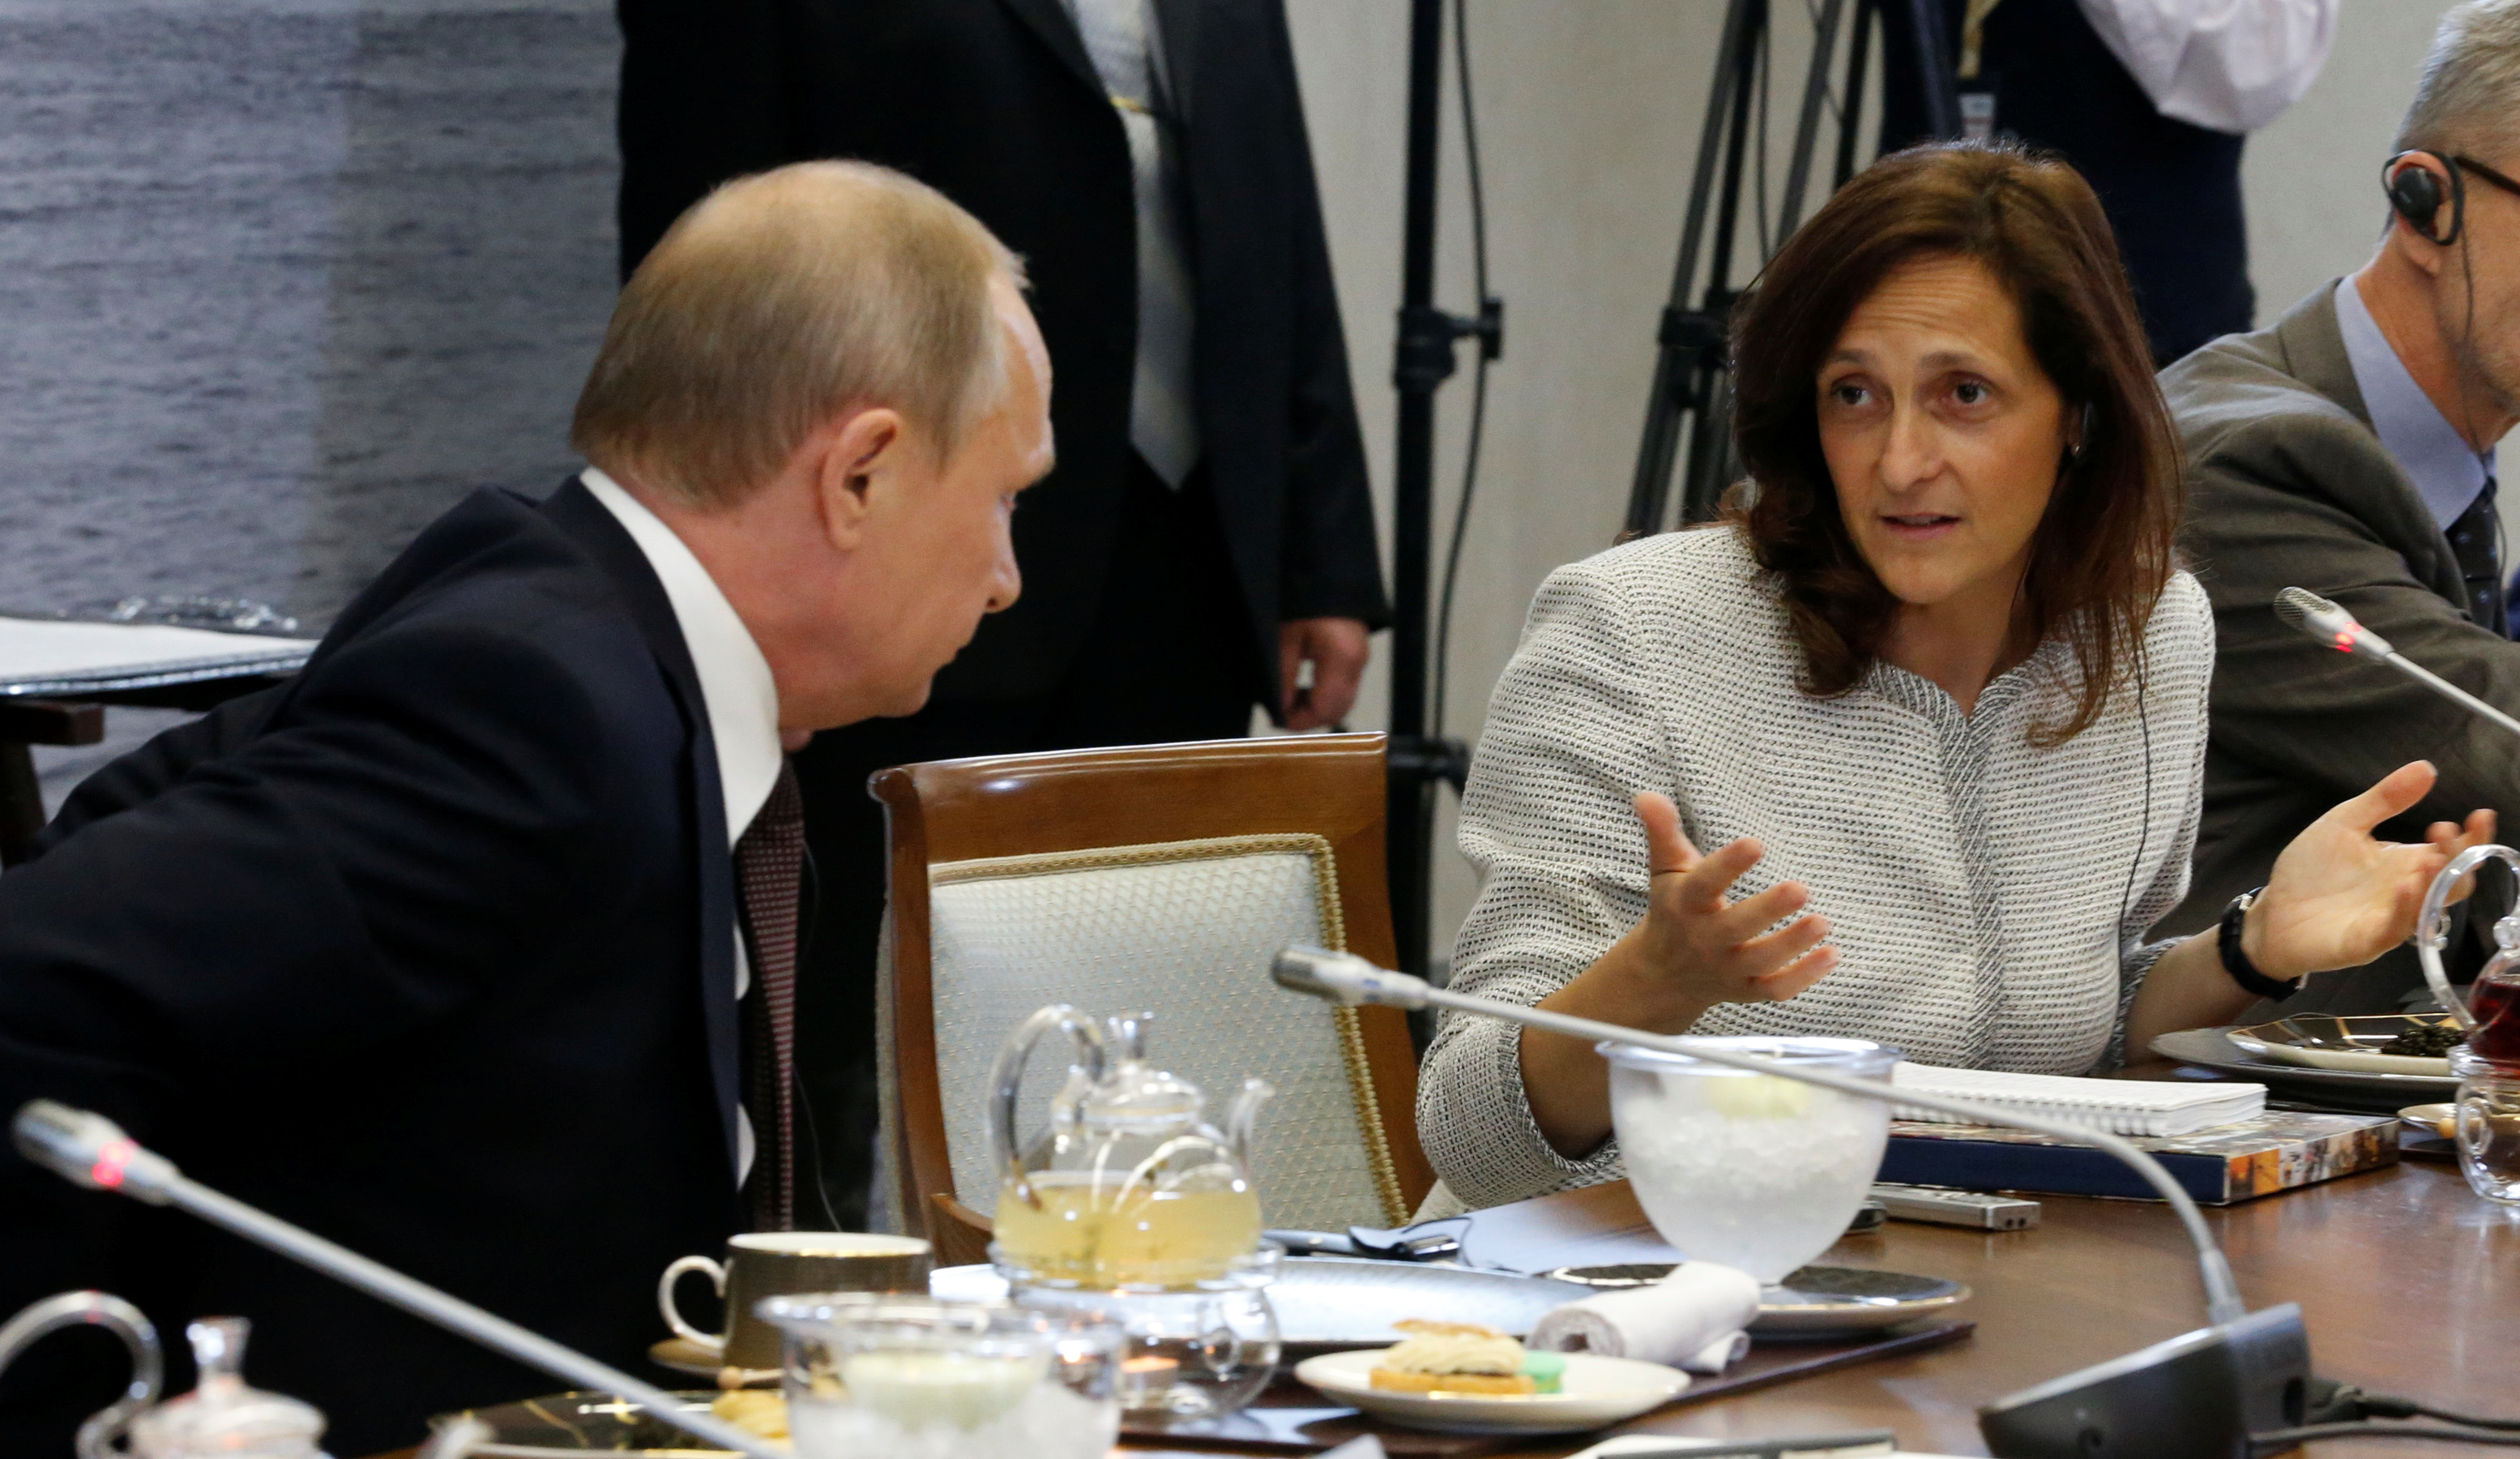 Russian President Vladimir Putin and Global News Editor of Reuters Alessandra Galloni attend a meeting with heads of leading global news agencies as part of the St. Petersburg International Economic Forum 2016 (SPIEF 2016) in St. Petersburg, Russia, June 17, 2016.  REUTERS/Grigory Dukor/File Photo